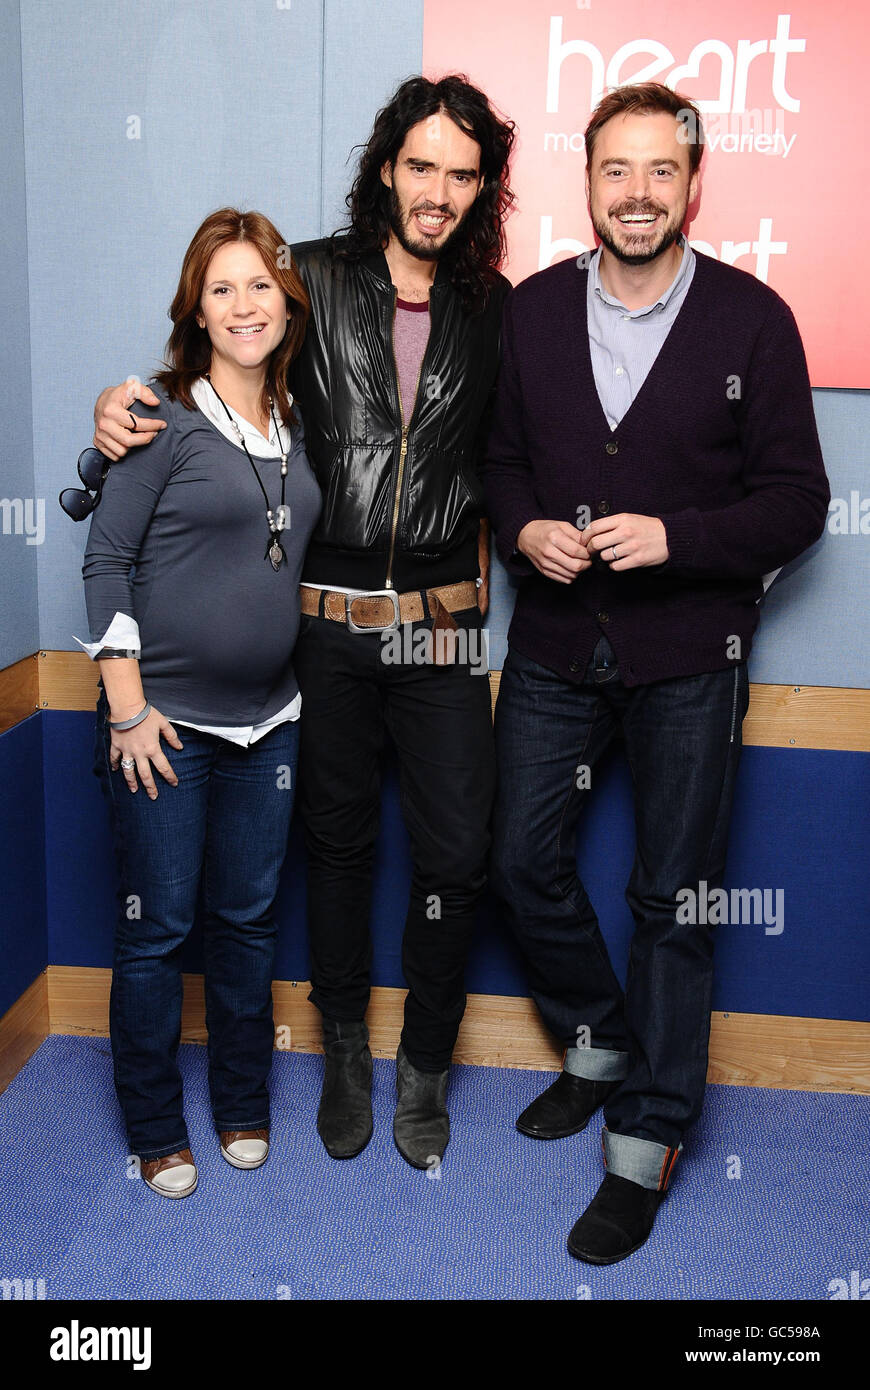 Russell Brand at Heart FM - London Stock Photo: 110755130